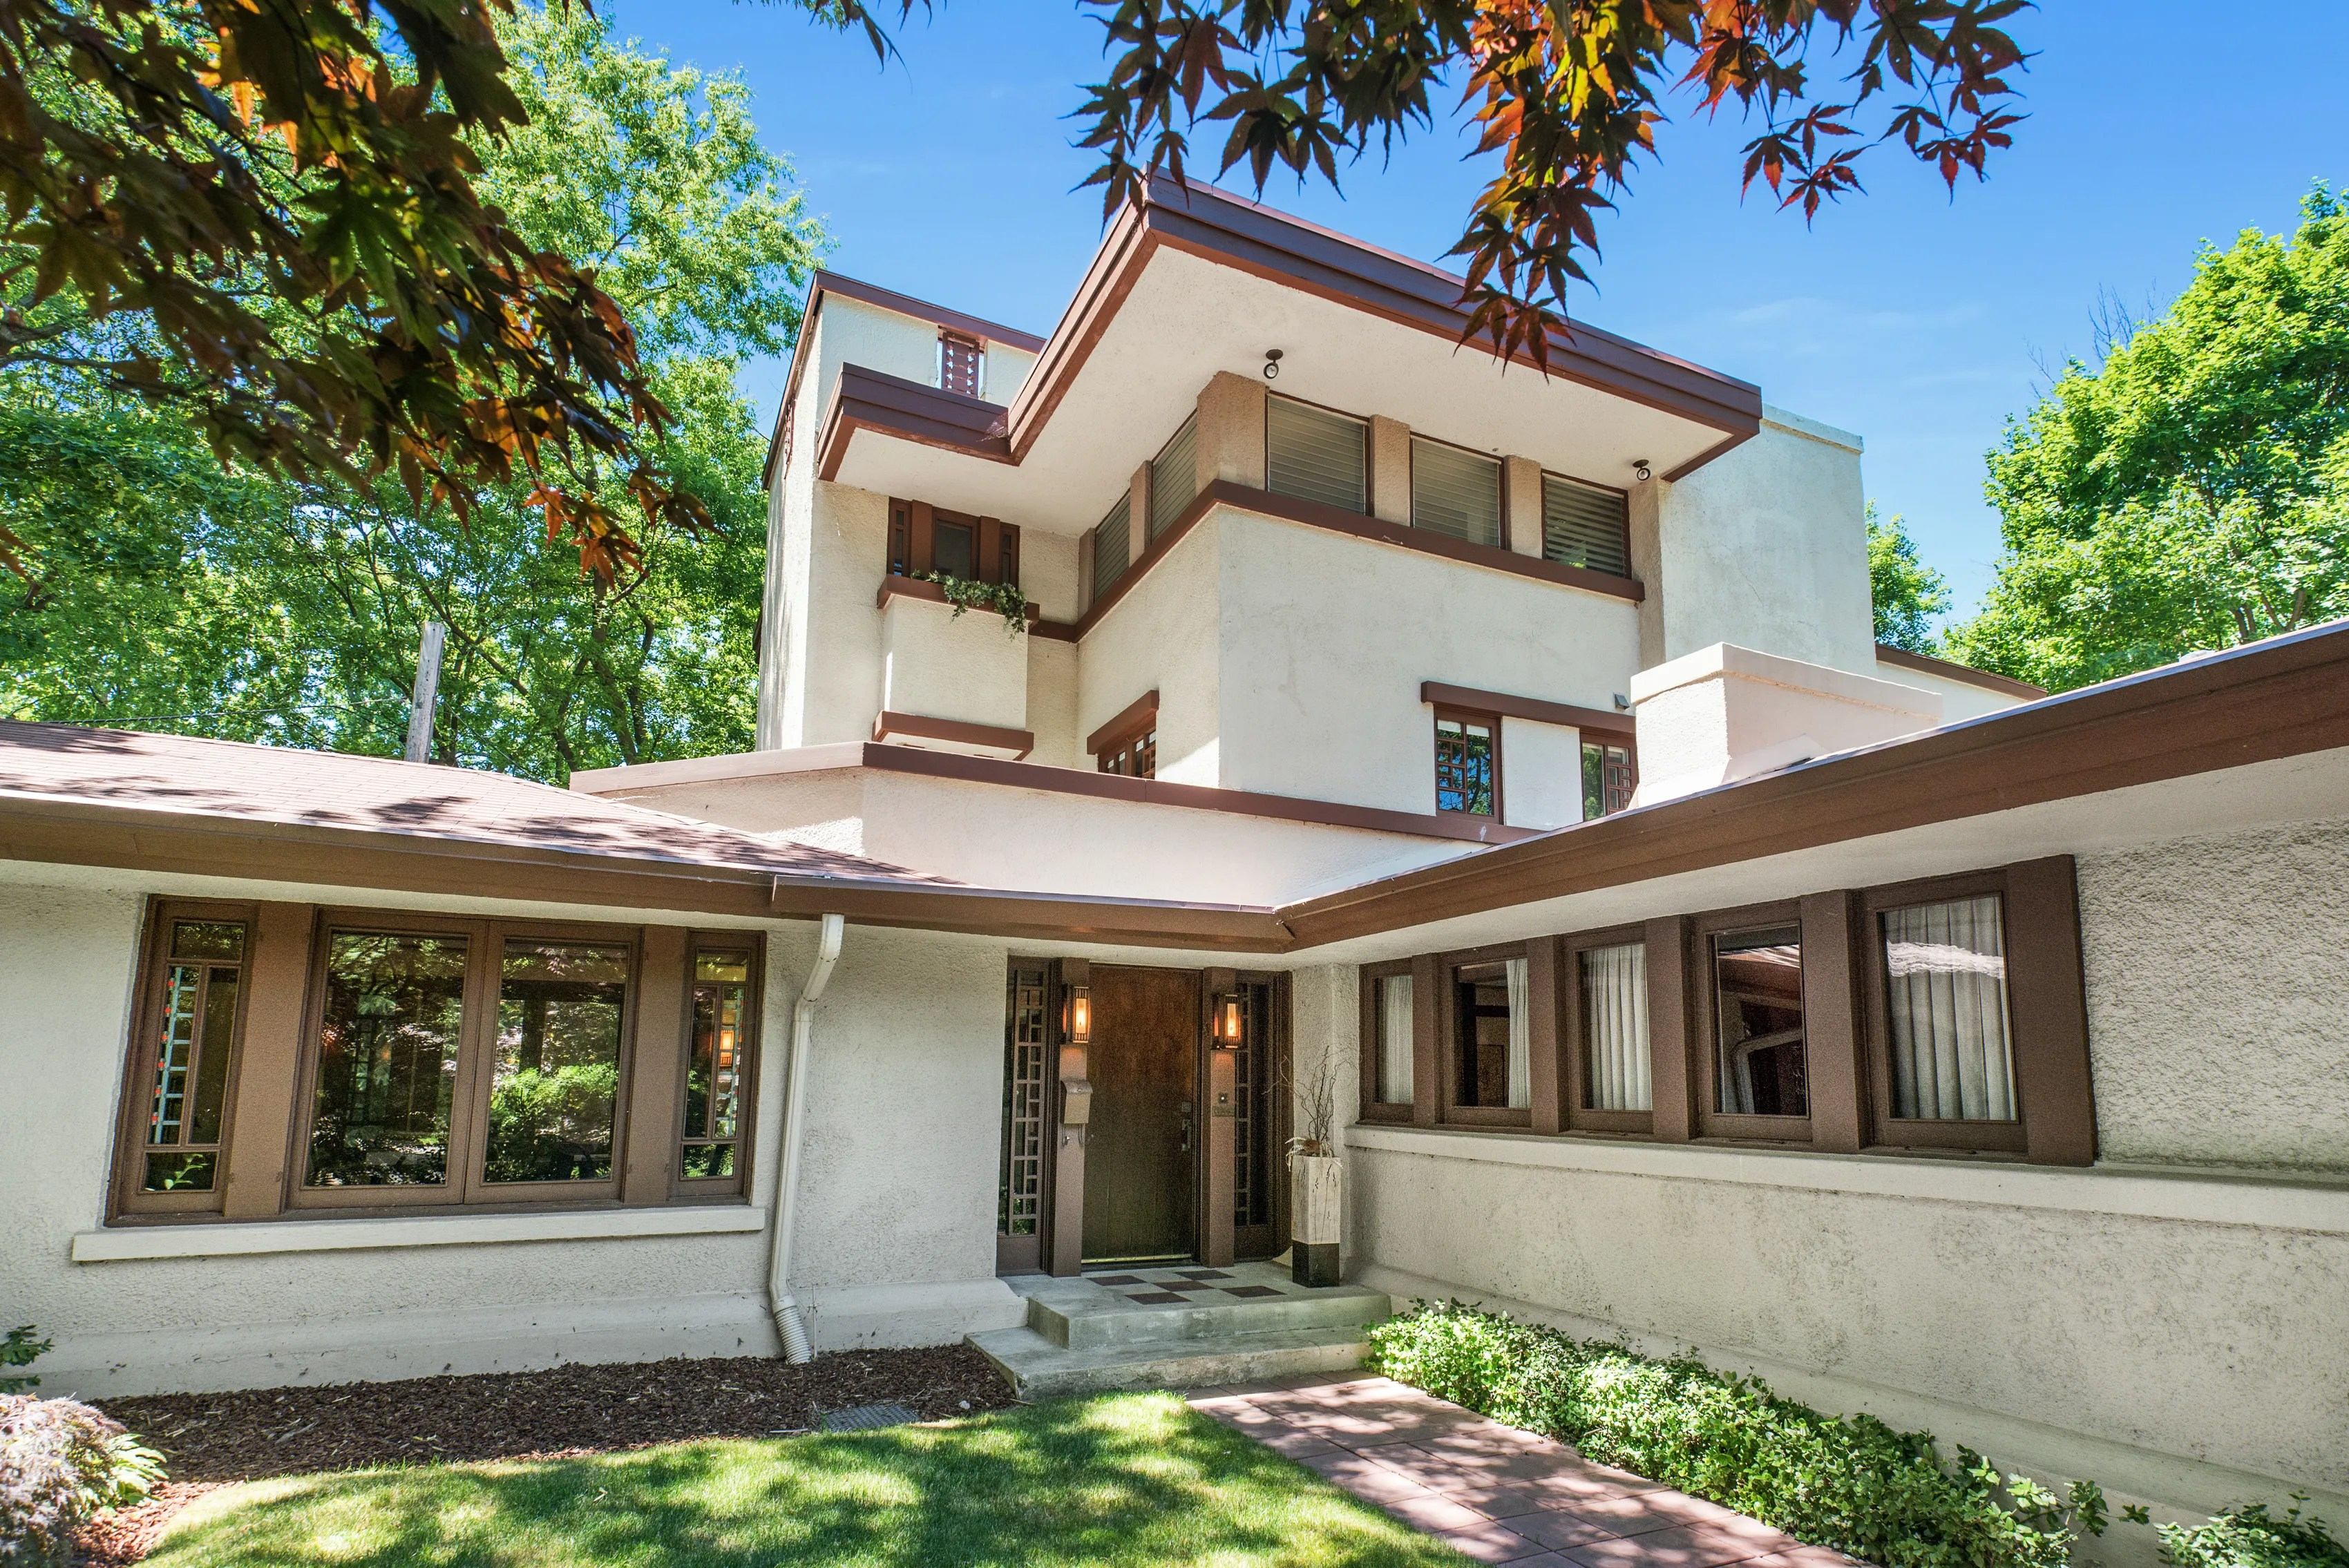 Own A Rare 3 Story Frank Lloyd Wright Home In Illinois